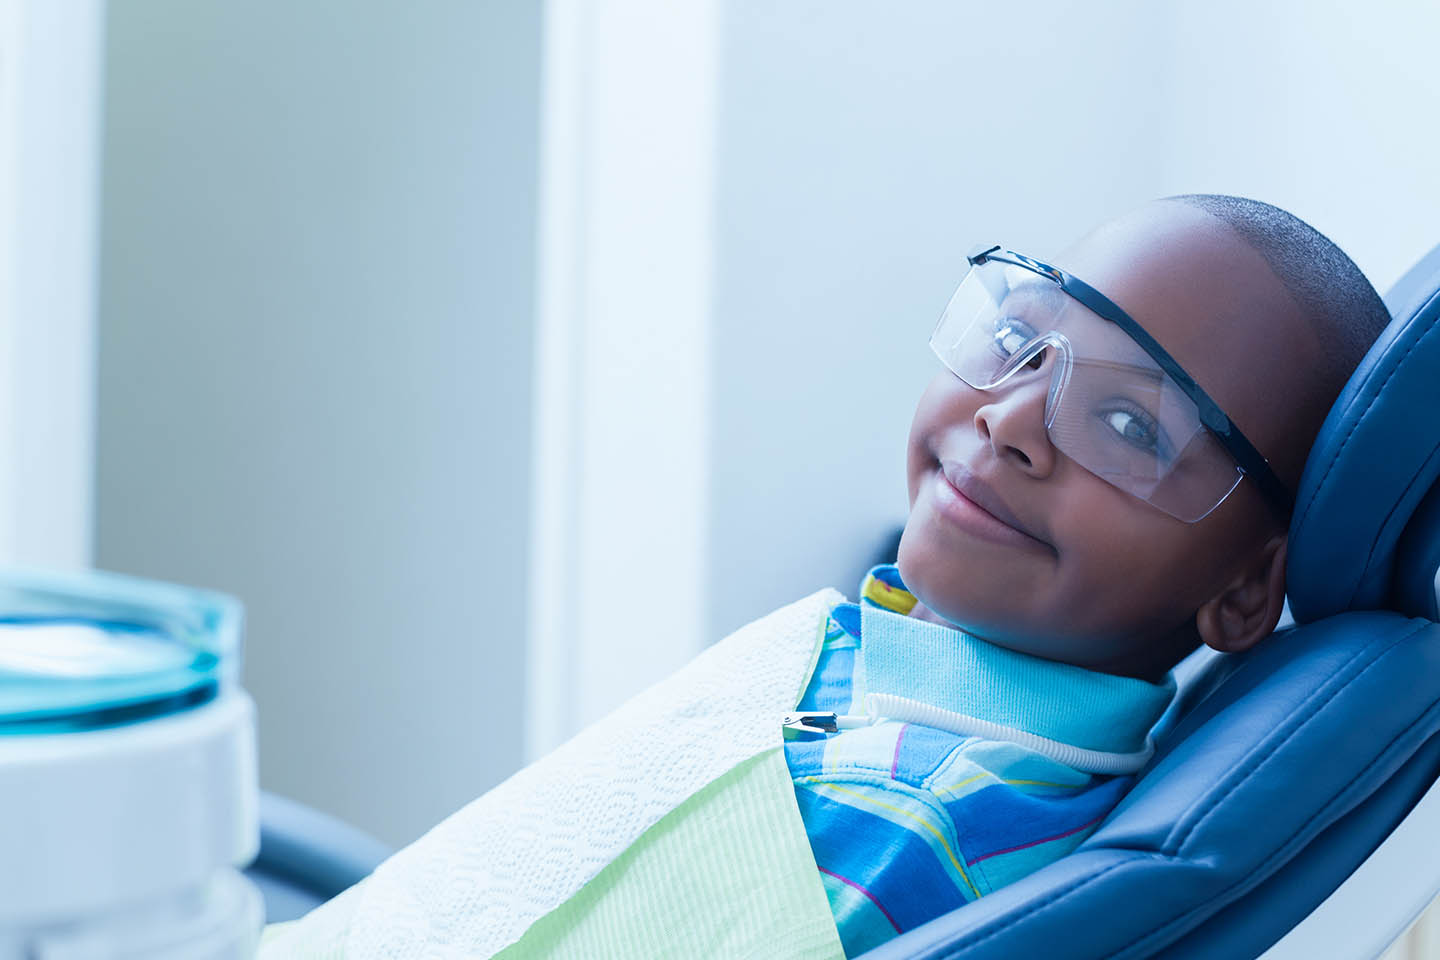 kid in operation chair wearing glasses